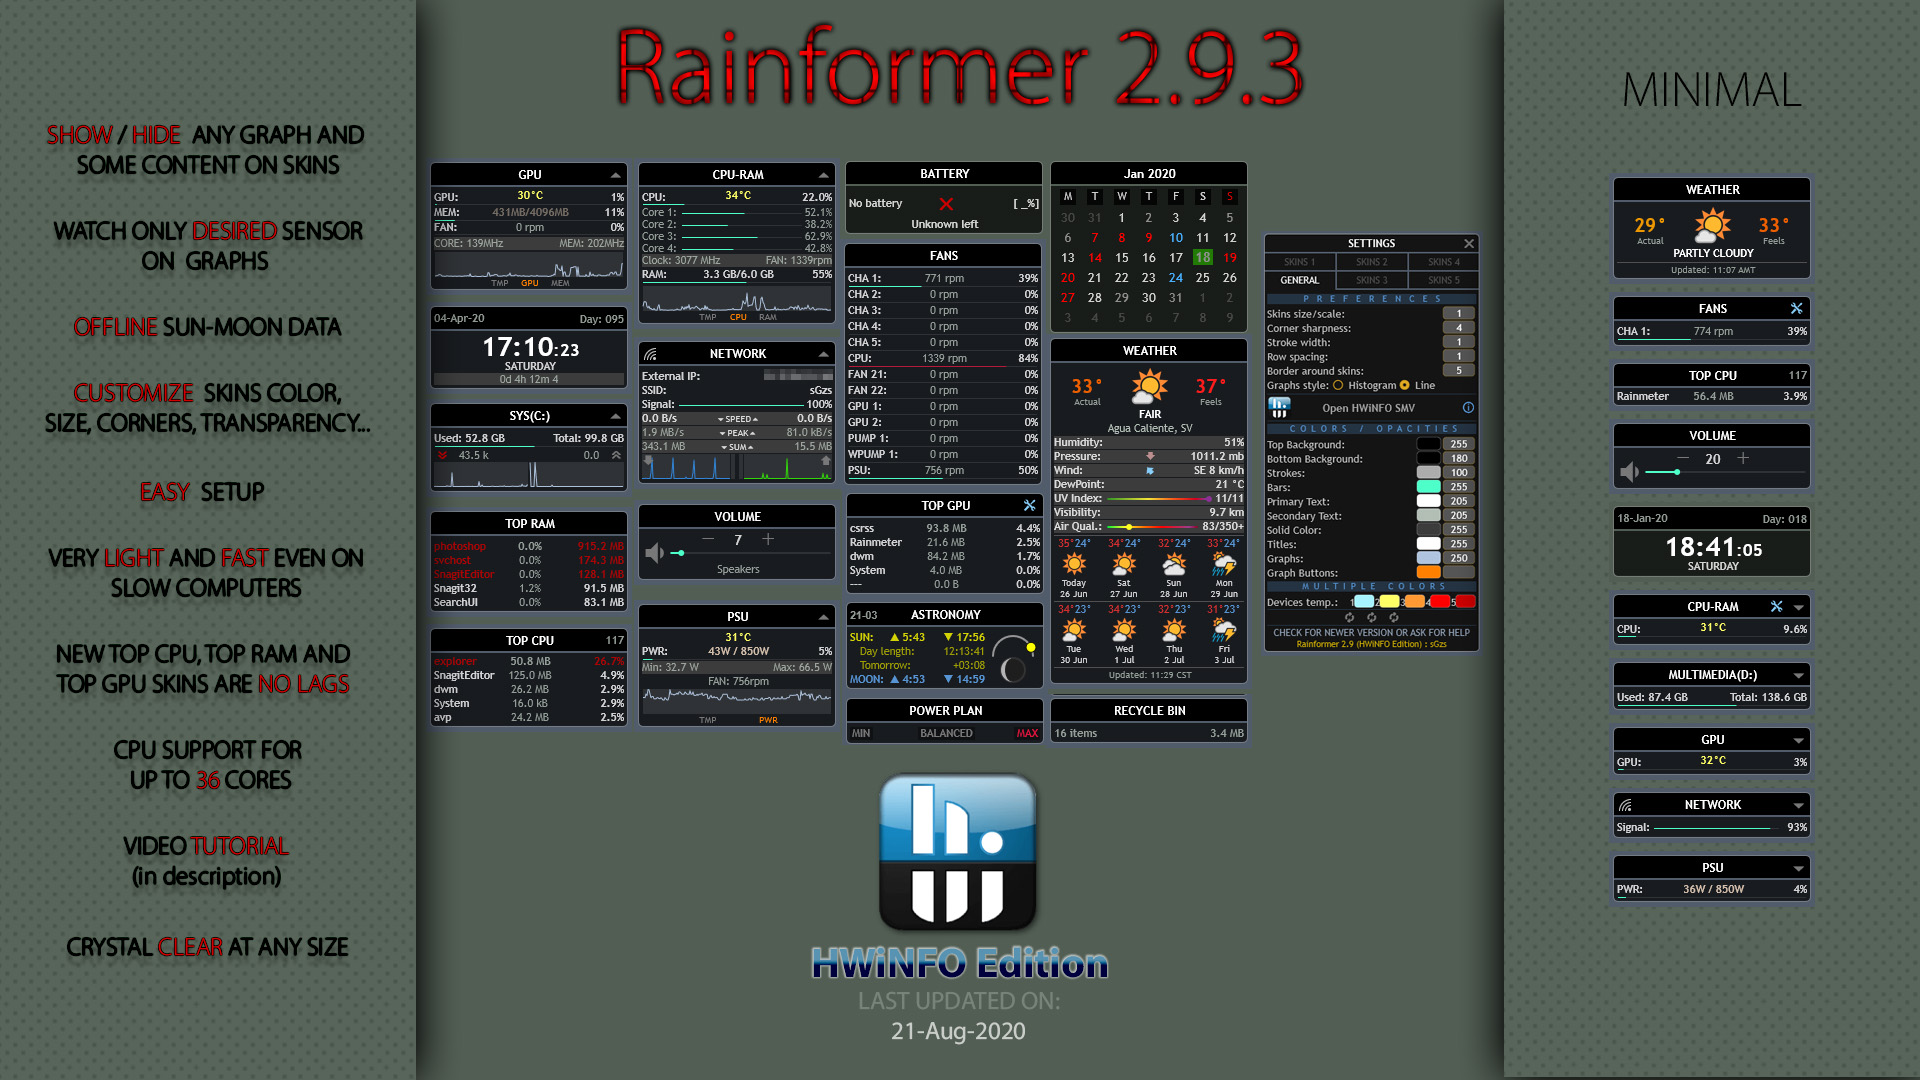 Rainformer 2.9.3 HWiNFO Edition : Rainmeter